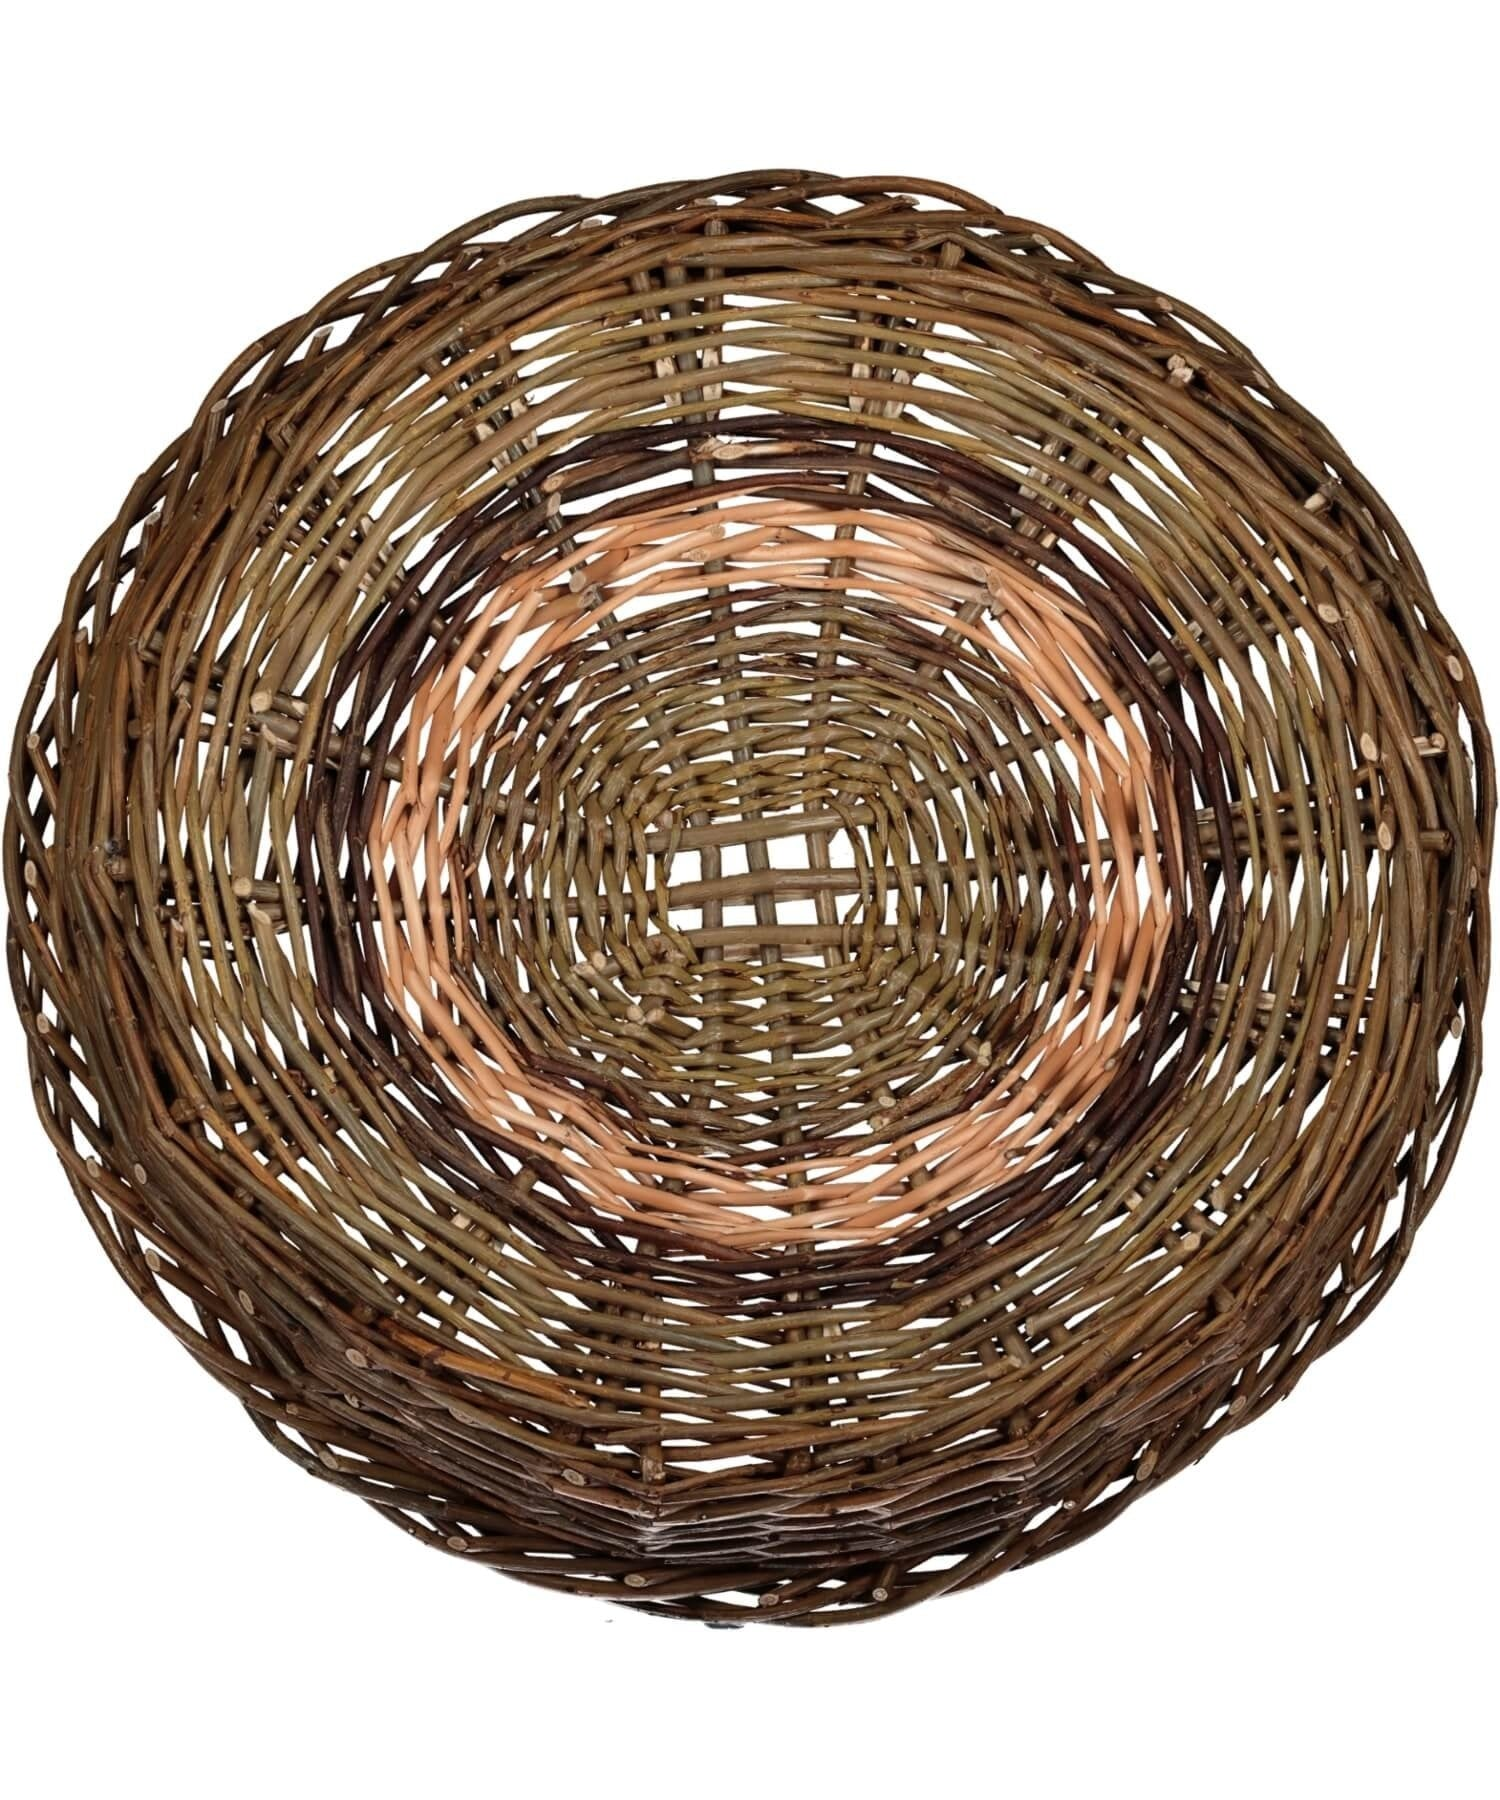 Irish Ciseog - Grid (large) Saille Baskets Wood & Slate